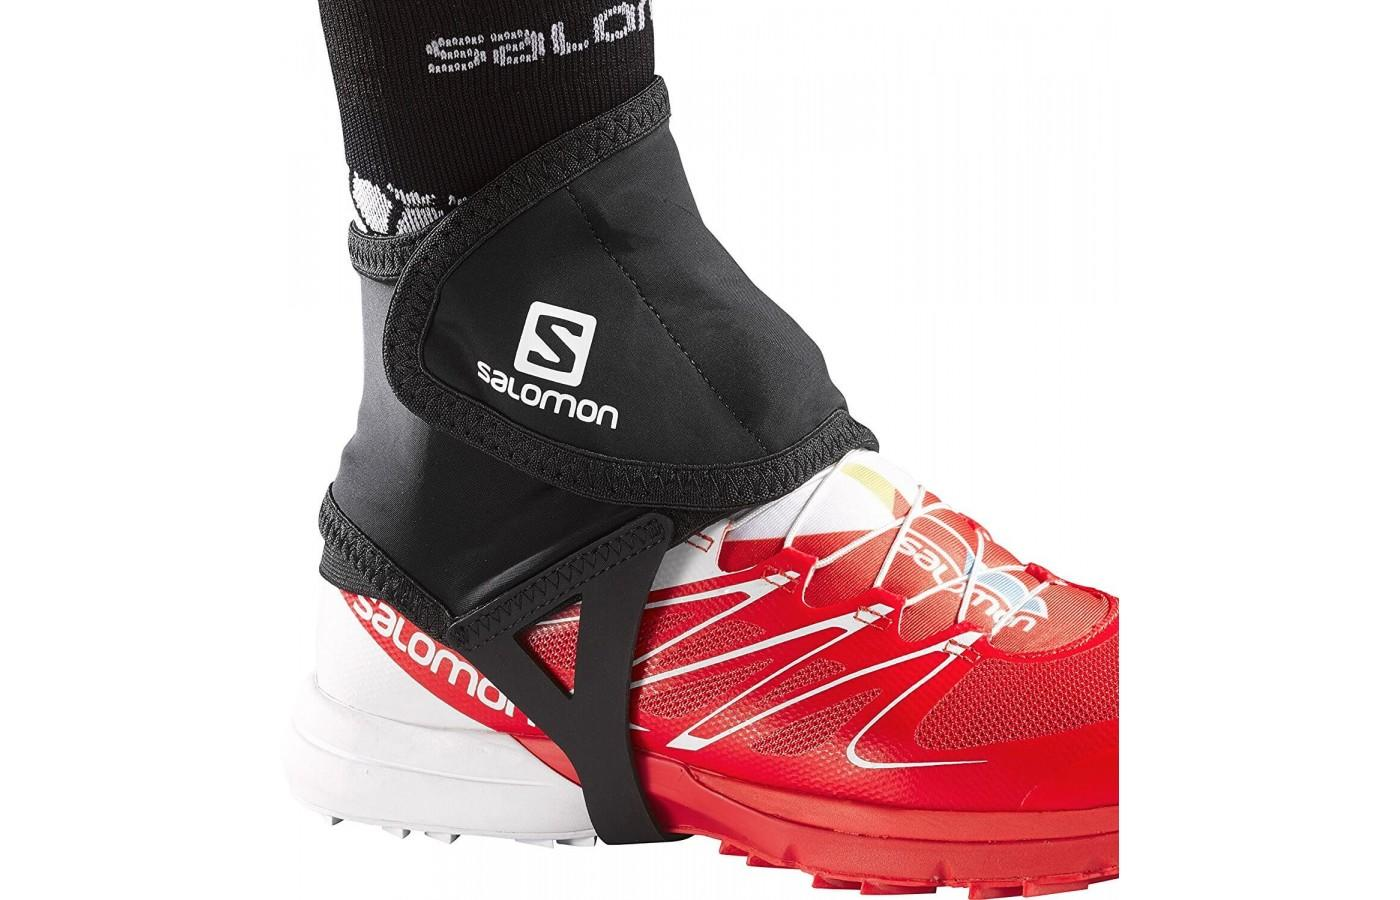 Salomon Low Trail Gaiters are flexible and comfortable for trail runners.